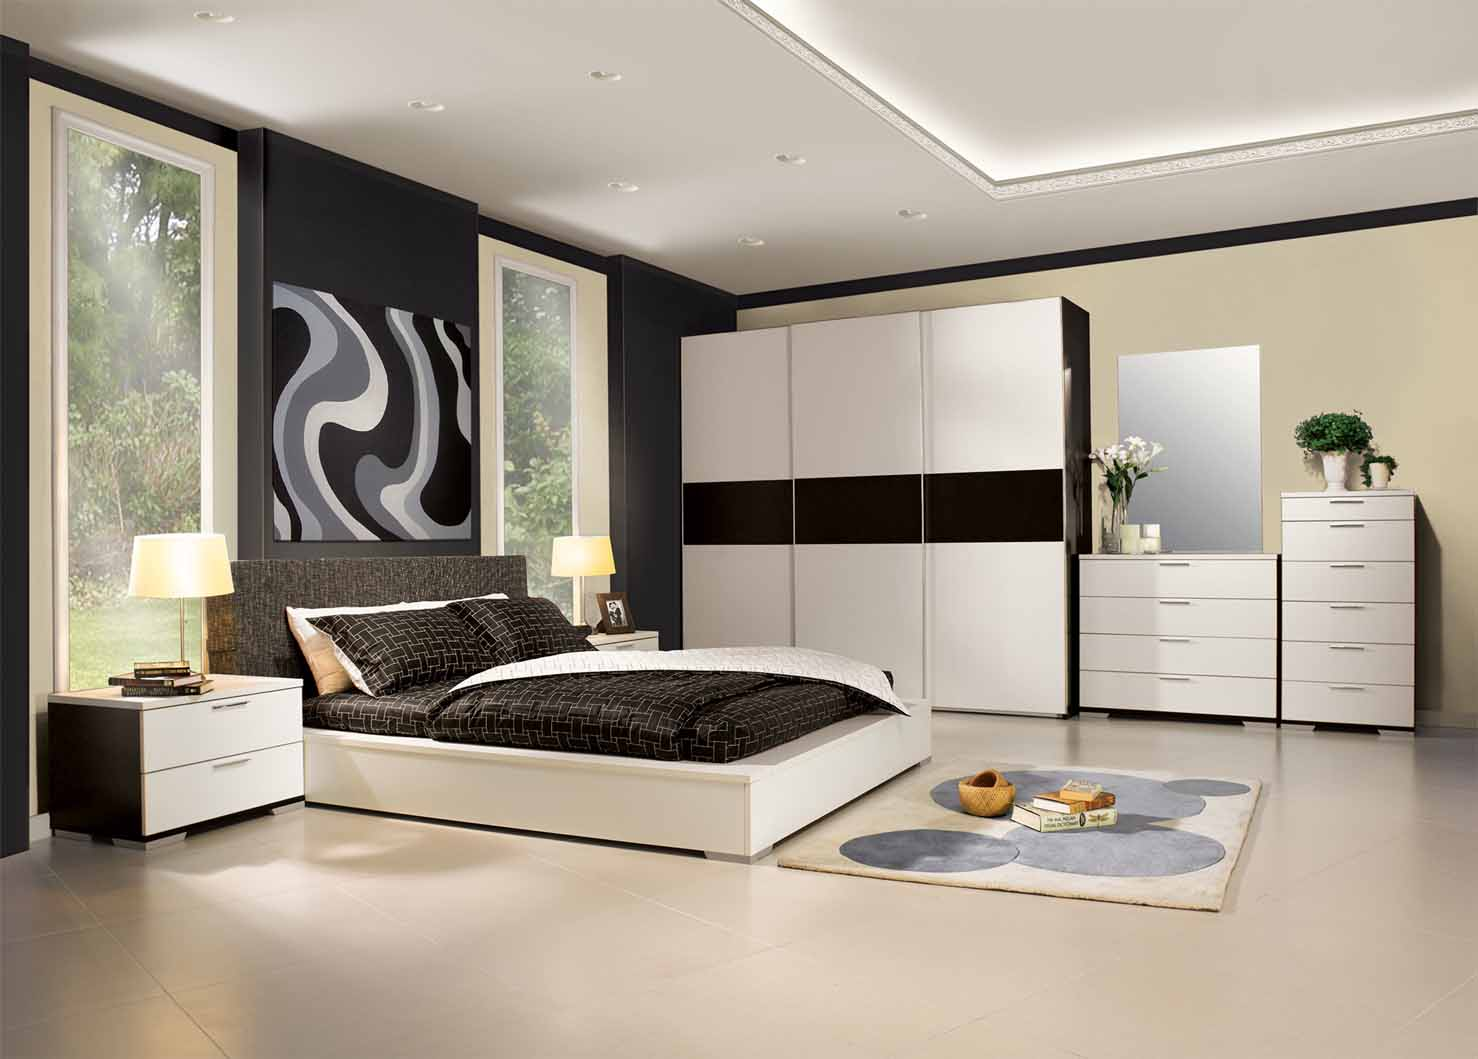 Black And White Small Bedroom Paint Ideas (View 6 of 10)